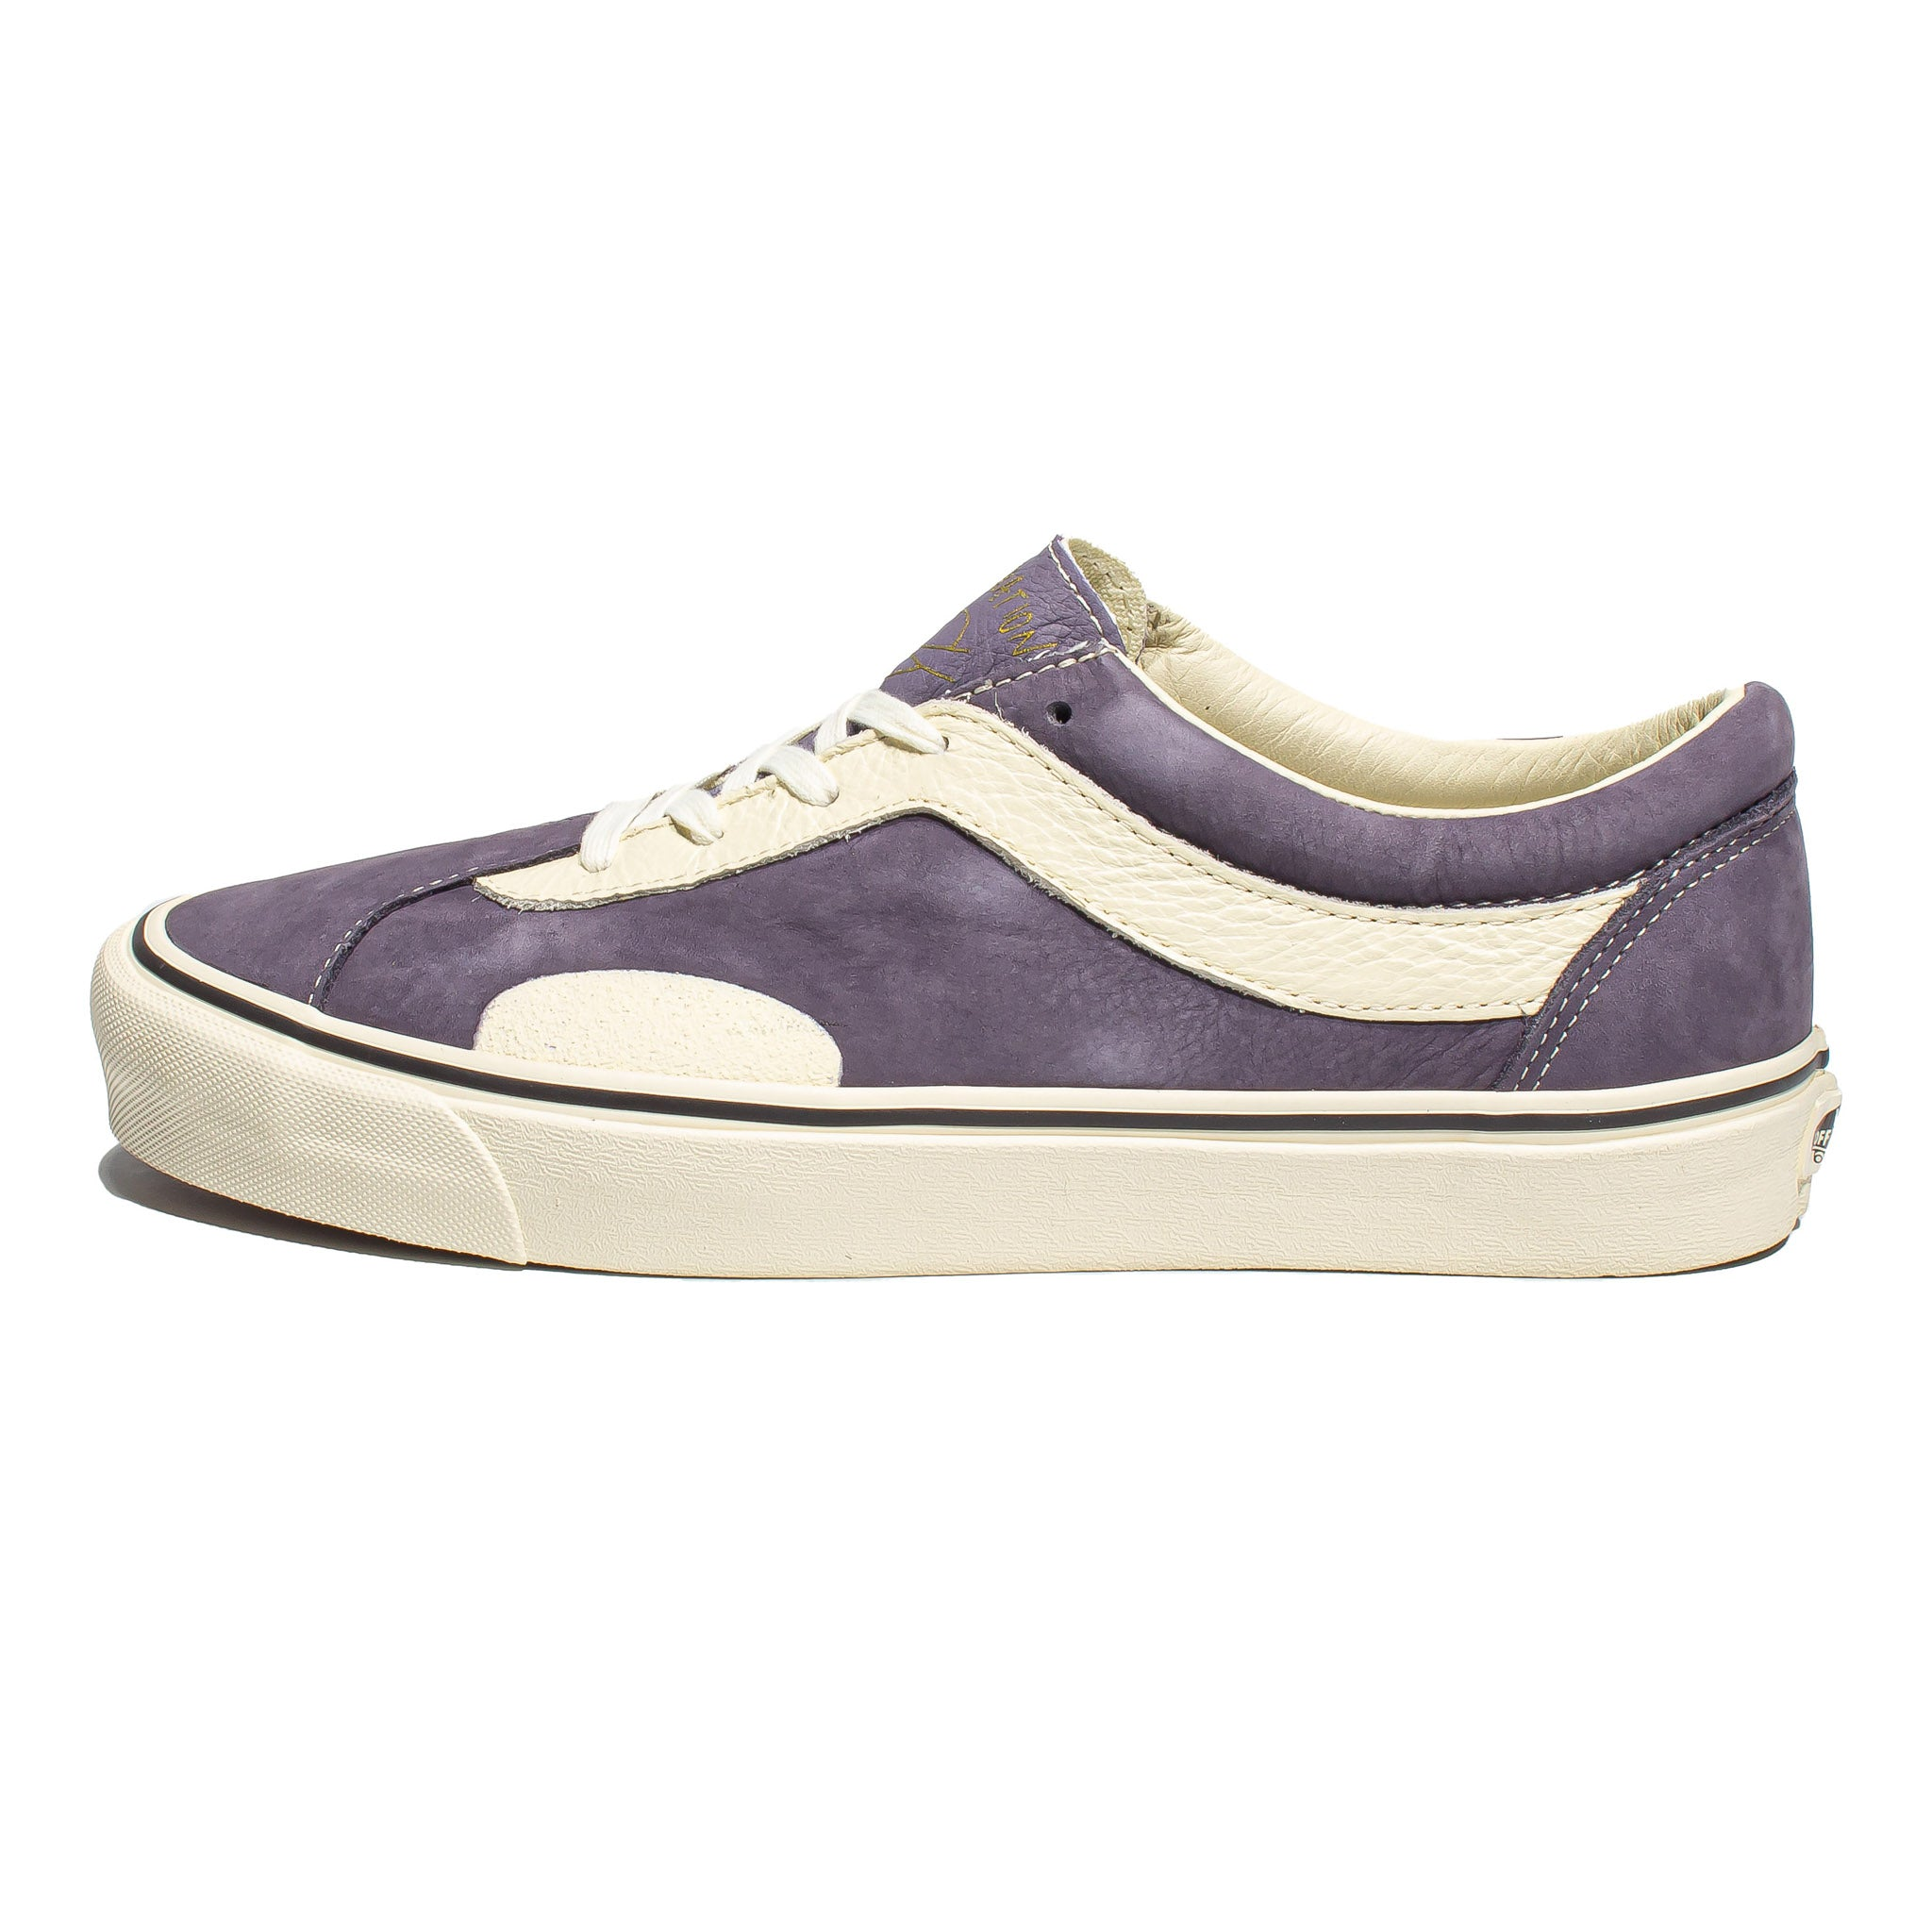 Vans Vault x Julian Klincewicz UA Bold Ni 'Communication' Purple